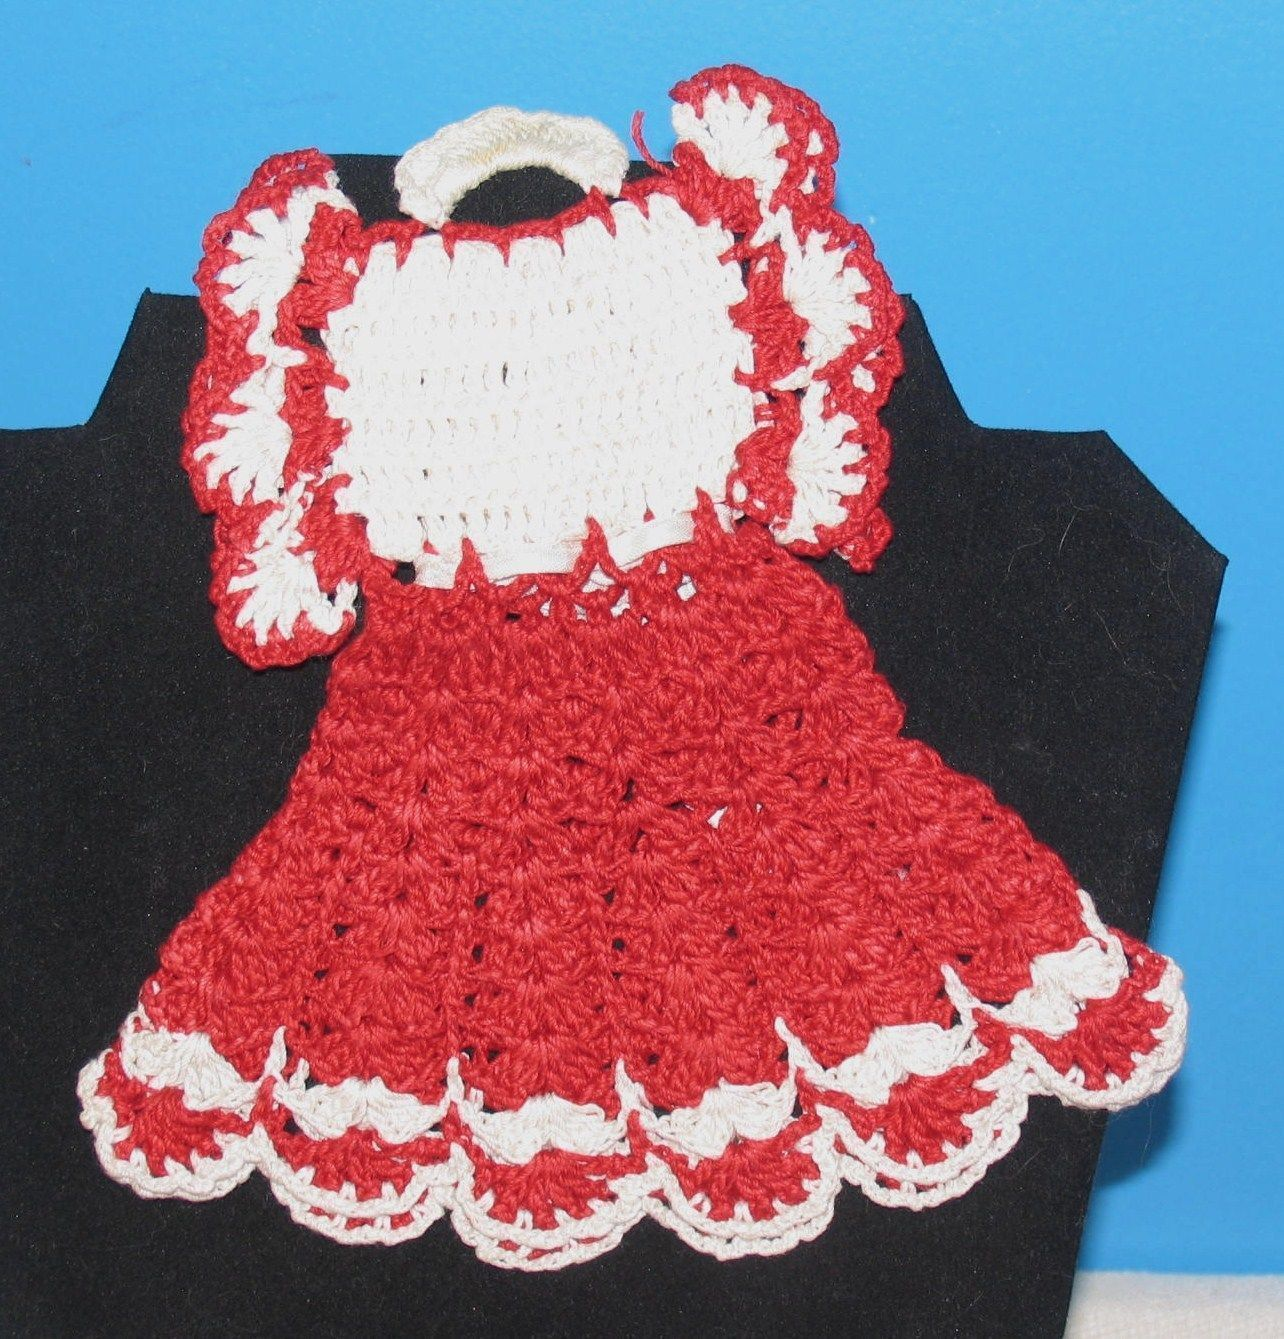 VINTAGE CROCHET COTTON DOILY BABY'S DRESS DECORATIVE WALL HANGING